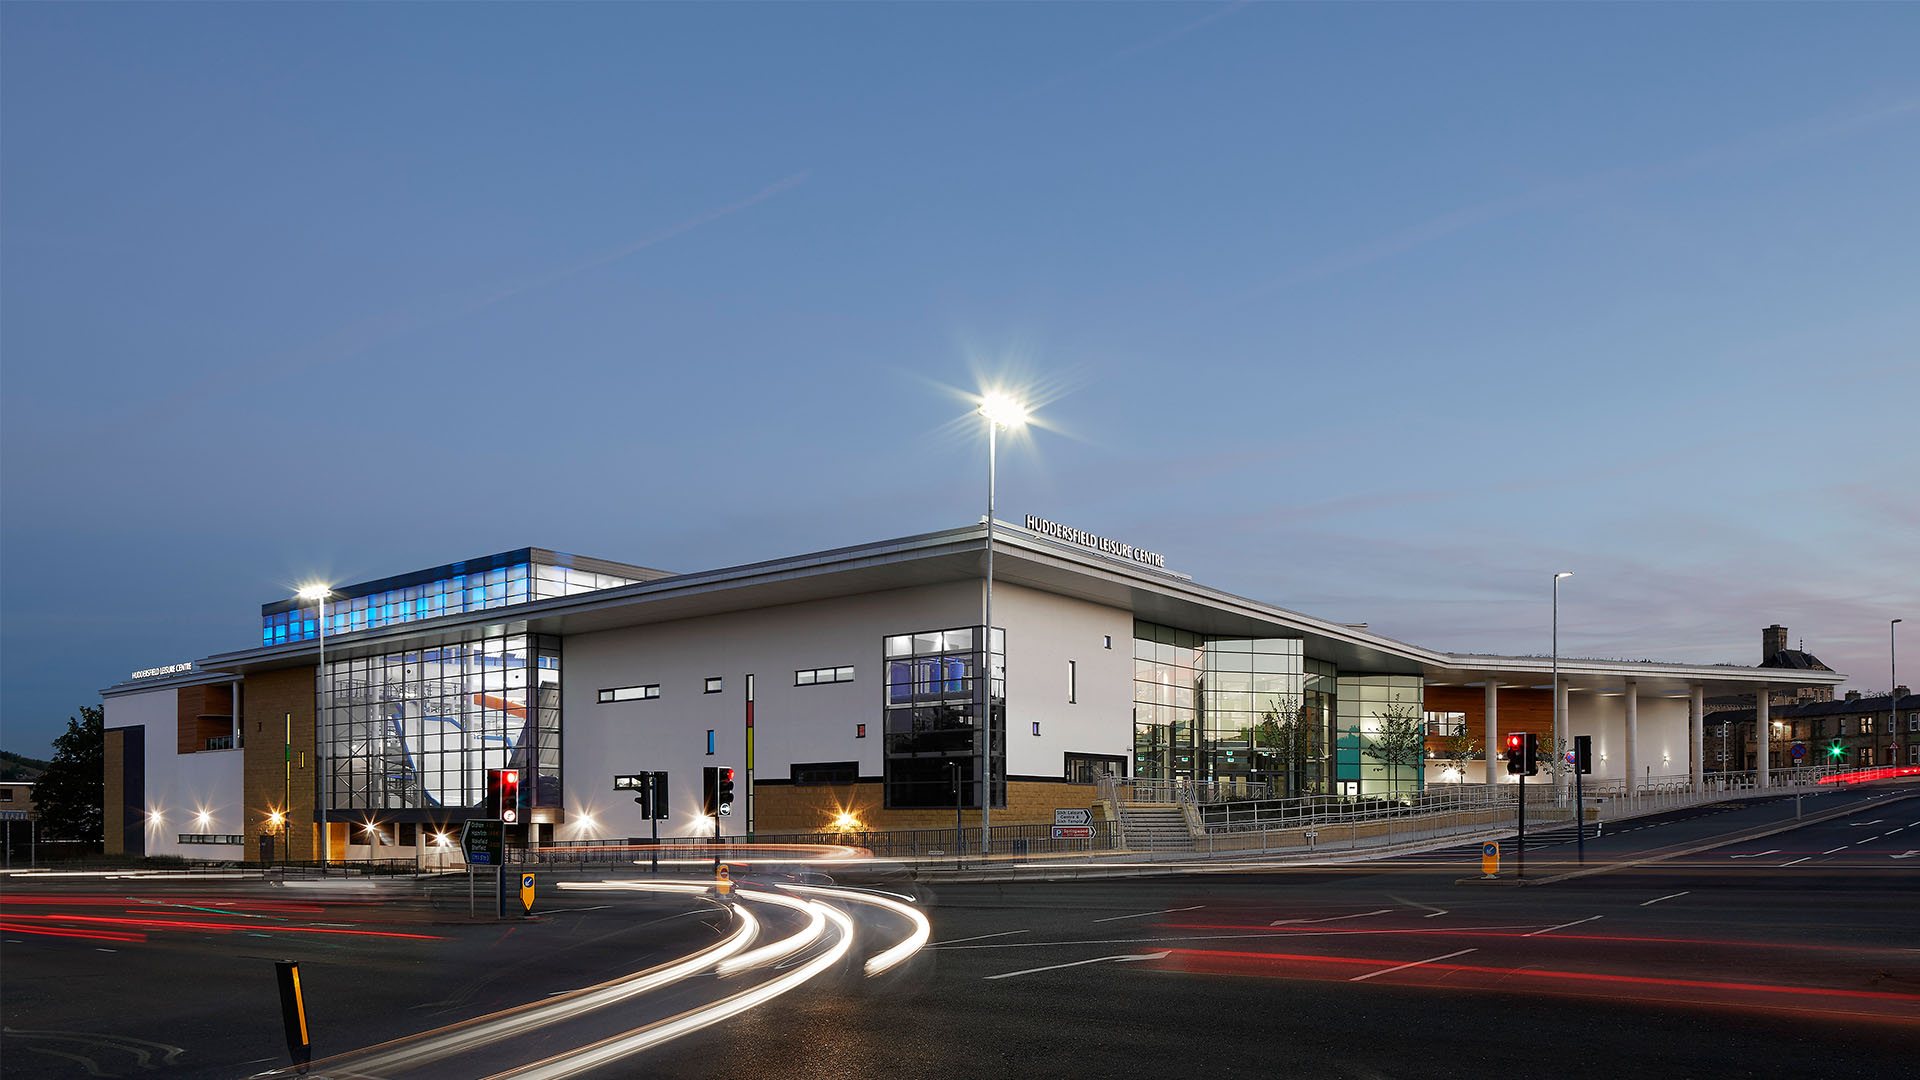 arnold leisure centre Lisburn & castlereagh city council is a council body in northern ireland which is citizen focused, responding to the needs, aspirations and concerns of the local community.